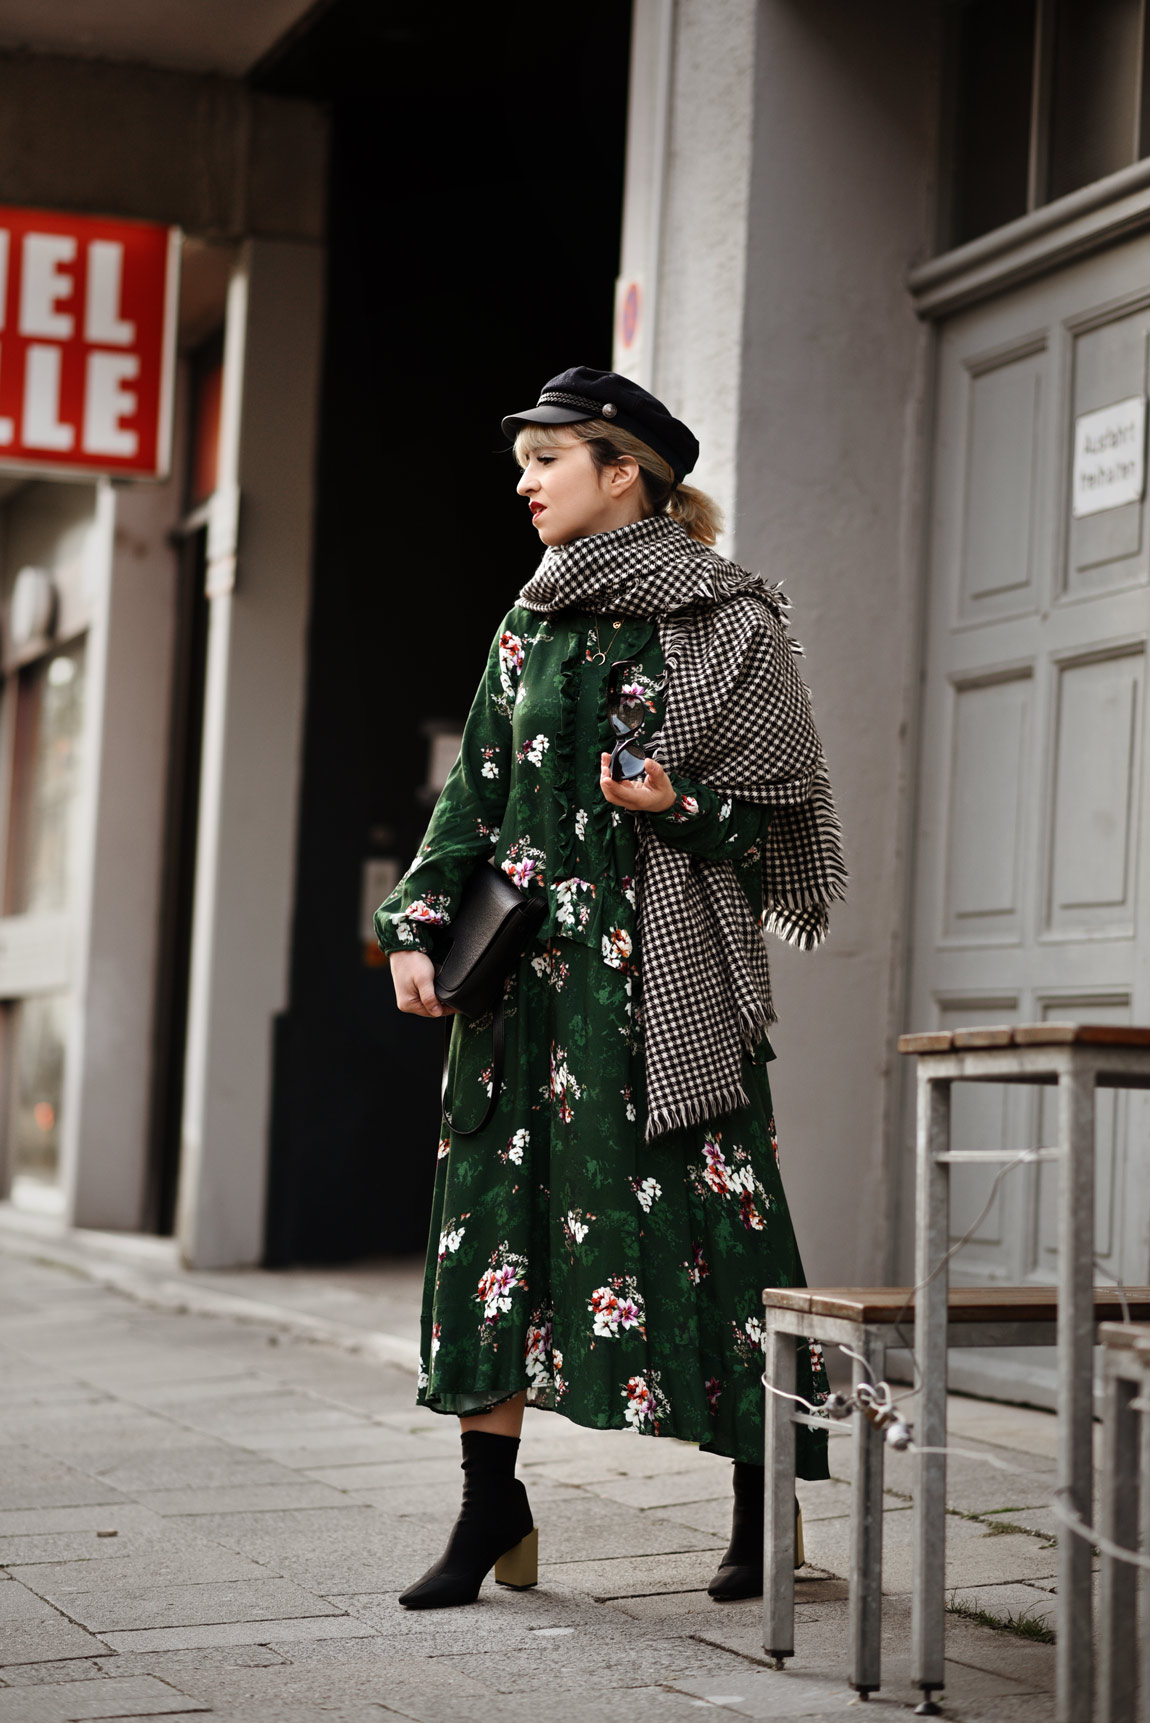 midi, kleid, grün, blumen, fashionblog, modeblog, modeblogger, münchen, hm, winter, shopping, look, streetstyle, ootd, outfit, inspiration, trendy